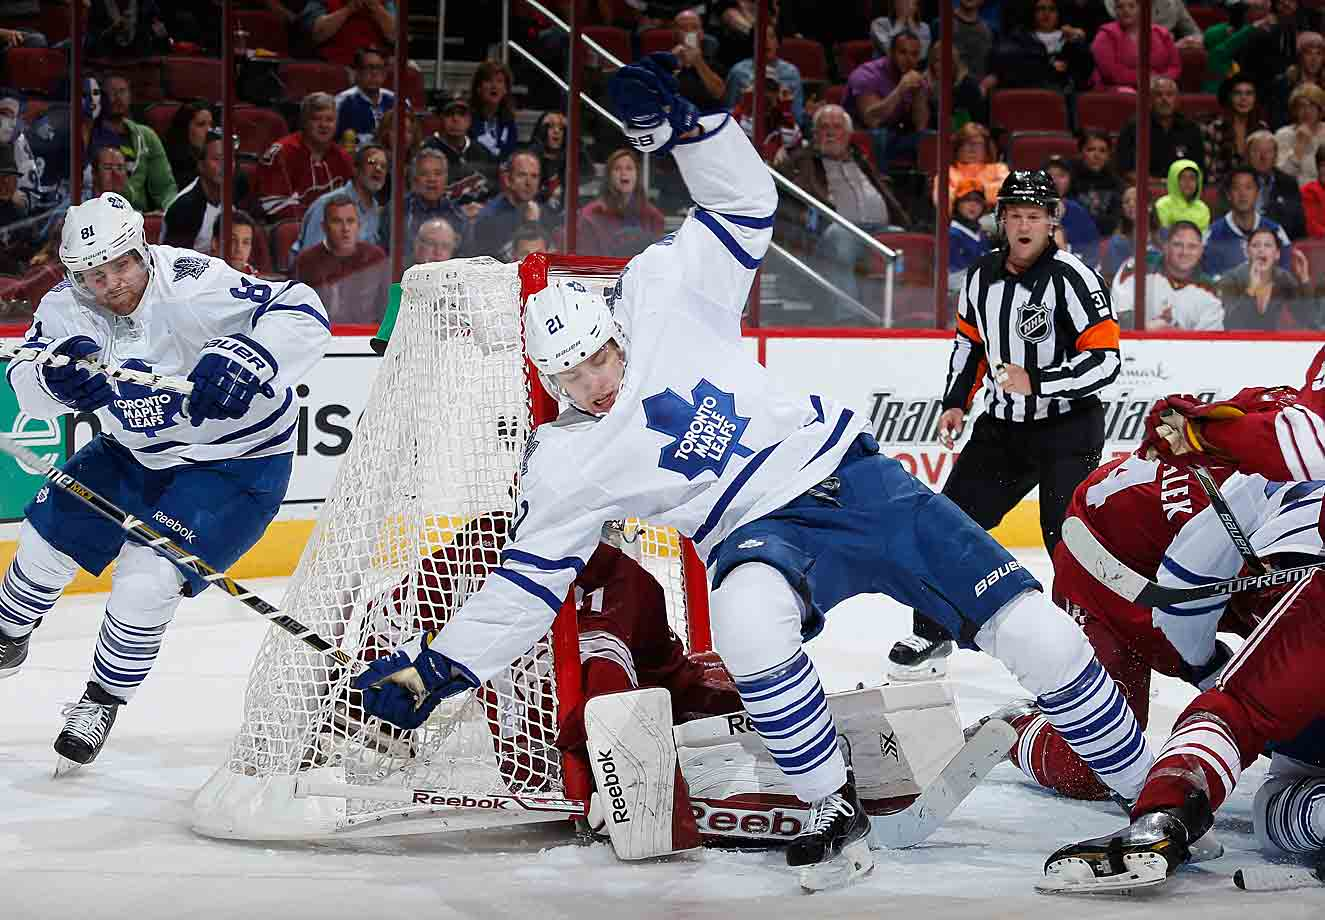 Falling Leaf: Toronto's James van Riemsdyk lands on goaltender Mike Smith of the Arizona Coyotes during the third period of their game at Gila River Arena in Glendale, Arizona on November 4, 2014. The Maple Leafs fell, 3-2.